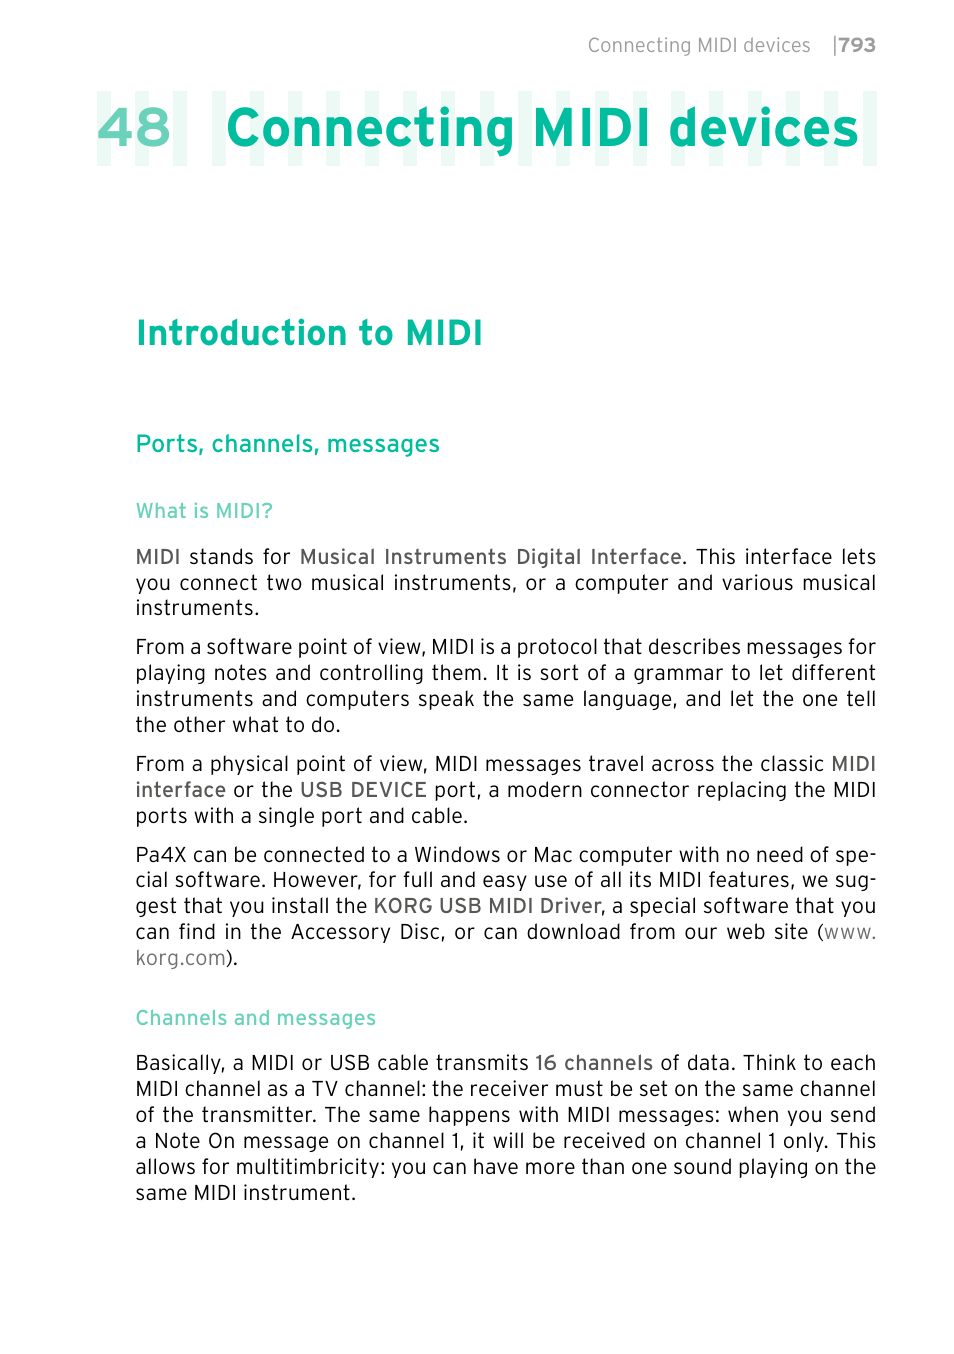 Connecting midi devices, Introduction to midi, 793